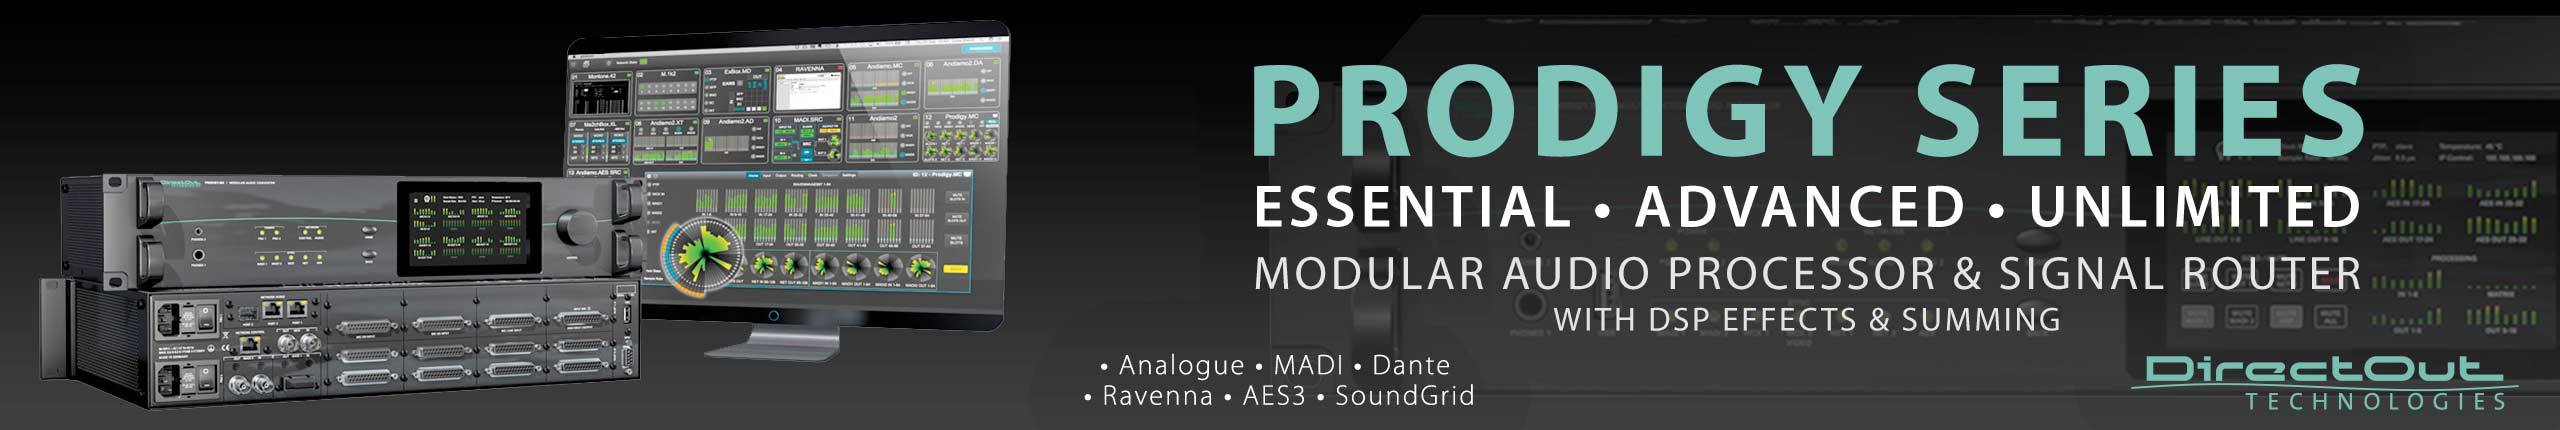 DirectOut Prodigy Series